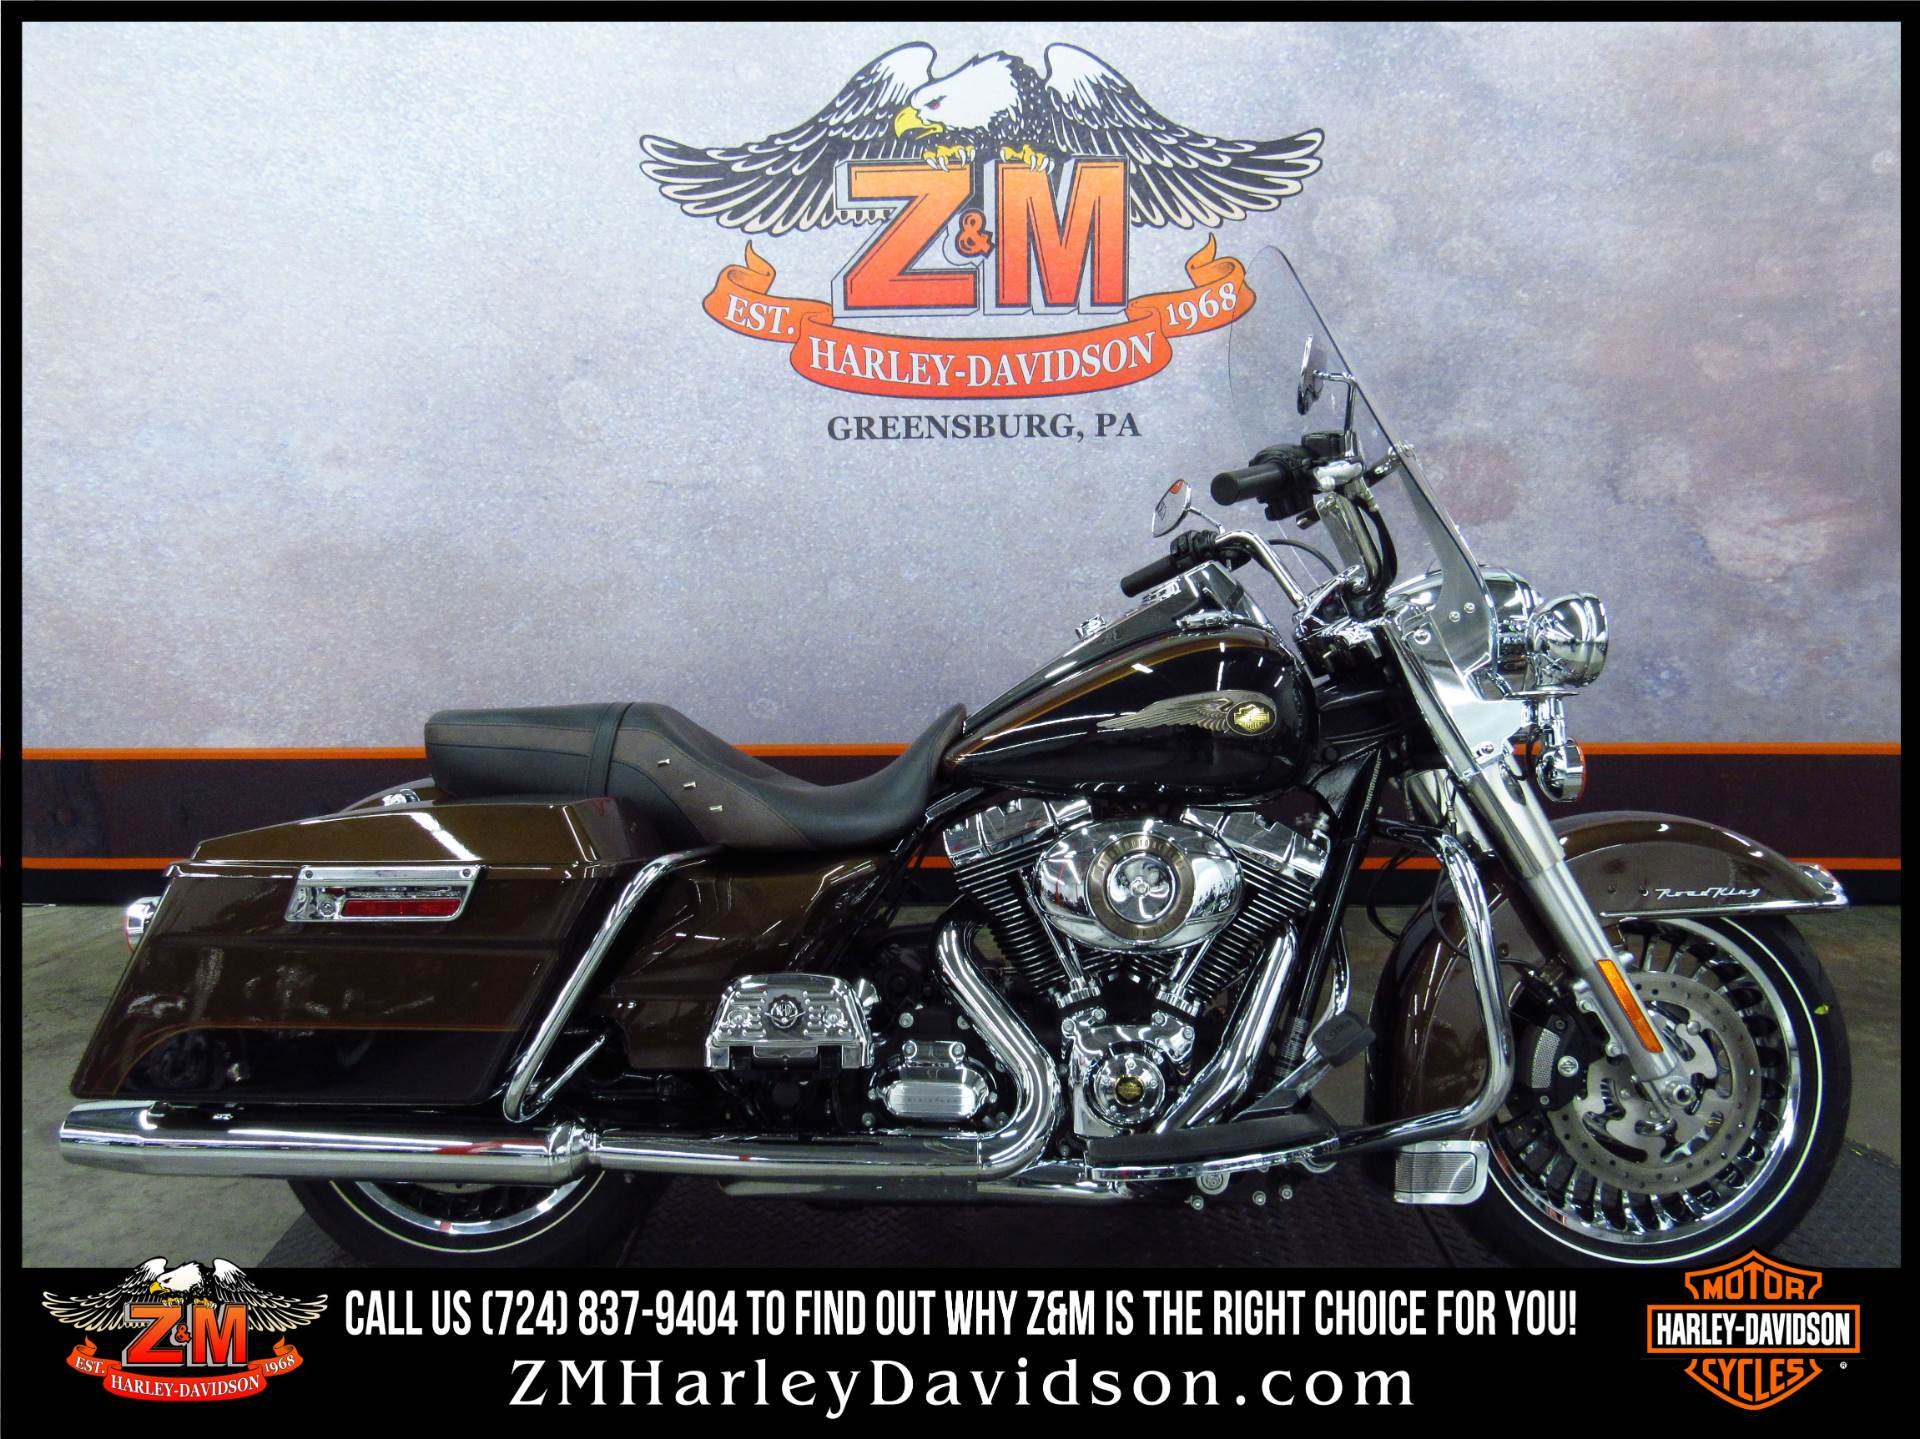 2013 Road King 110th Anniversary Edition